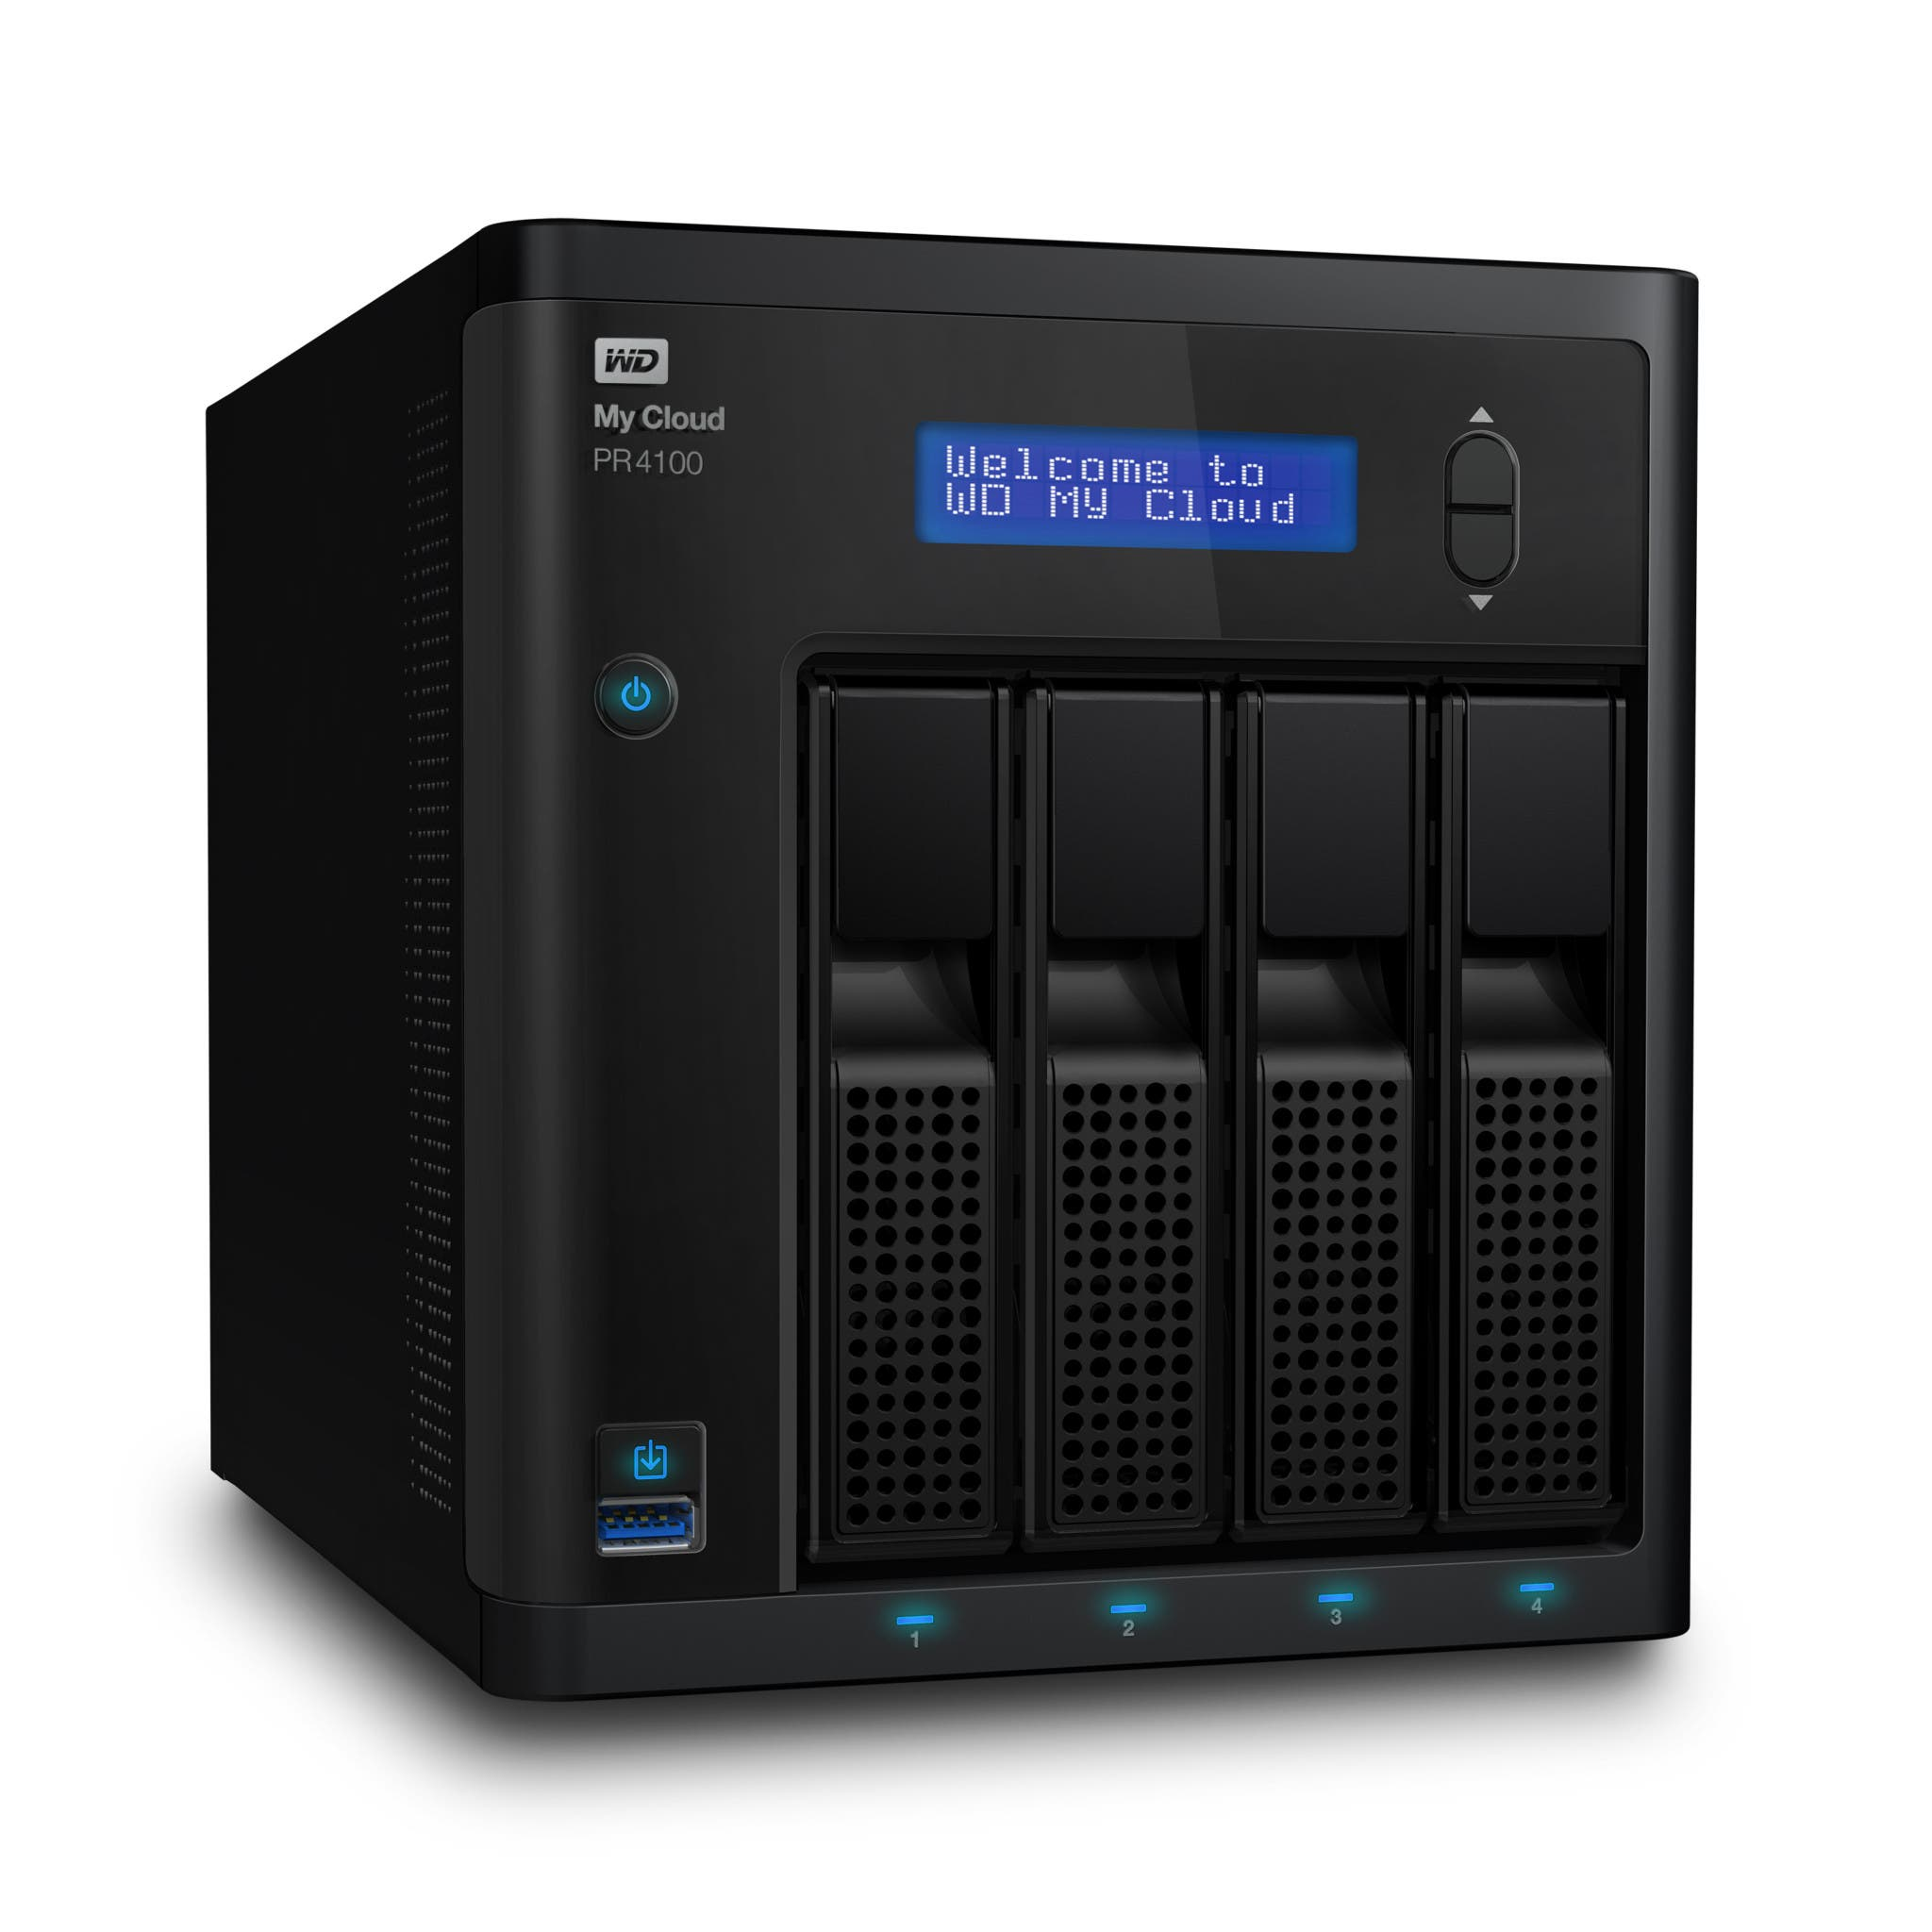 Western Digital's New Pro Series Drives Sync to Adobe CC